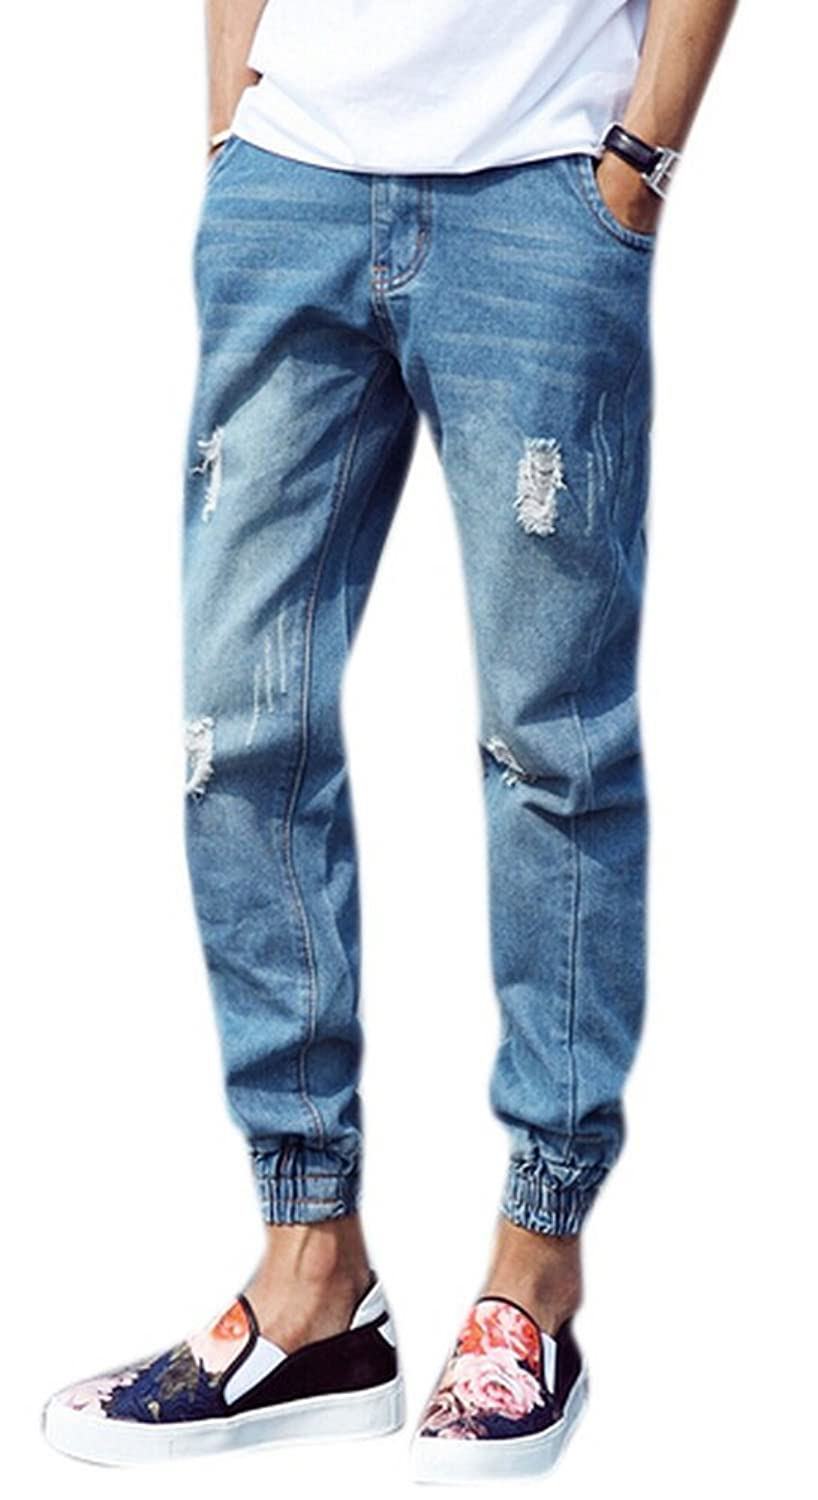 db5650b1144bf new Sarriben Men s Blue Denim Ripped Jogger Pant Jean with Hole. outlet  DKNY Women s Stretch Pleated Linen ...